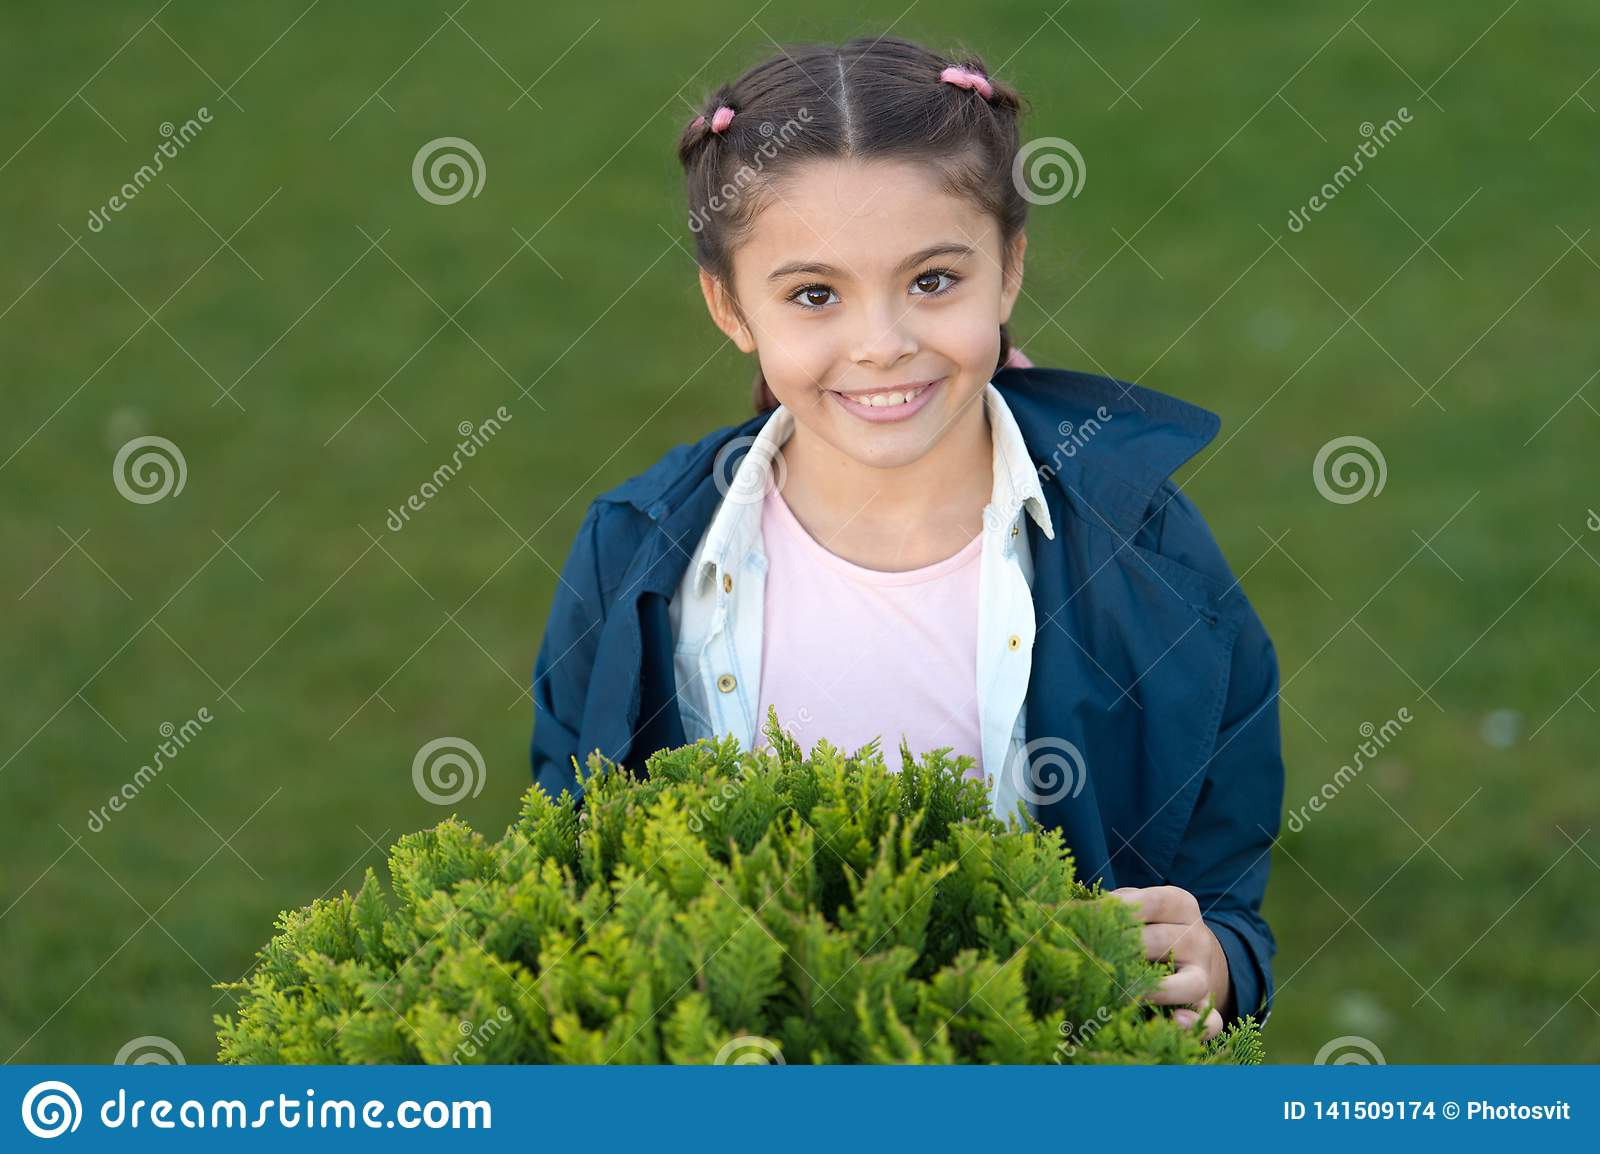 Pure smile. Honest smile of healthy kid. Autumn weather. Spring fashion for little girl. Park outdoor. Happy child with